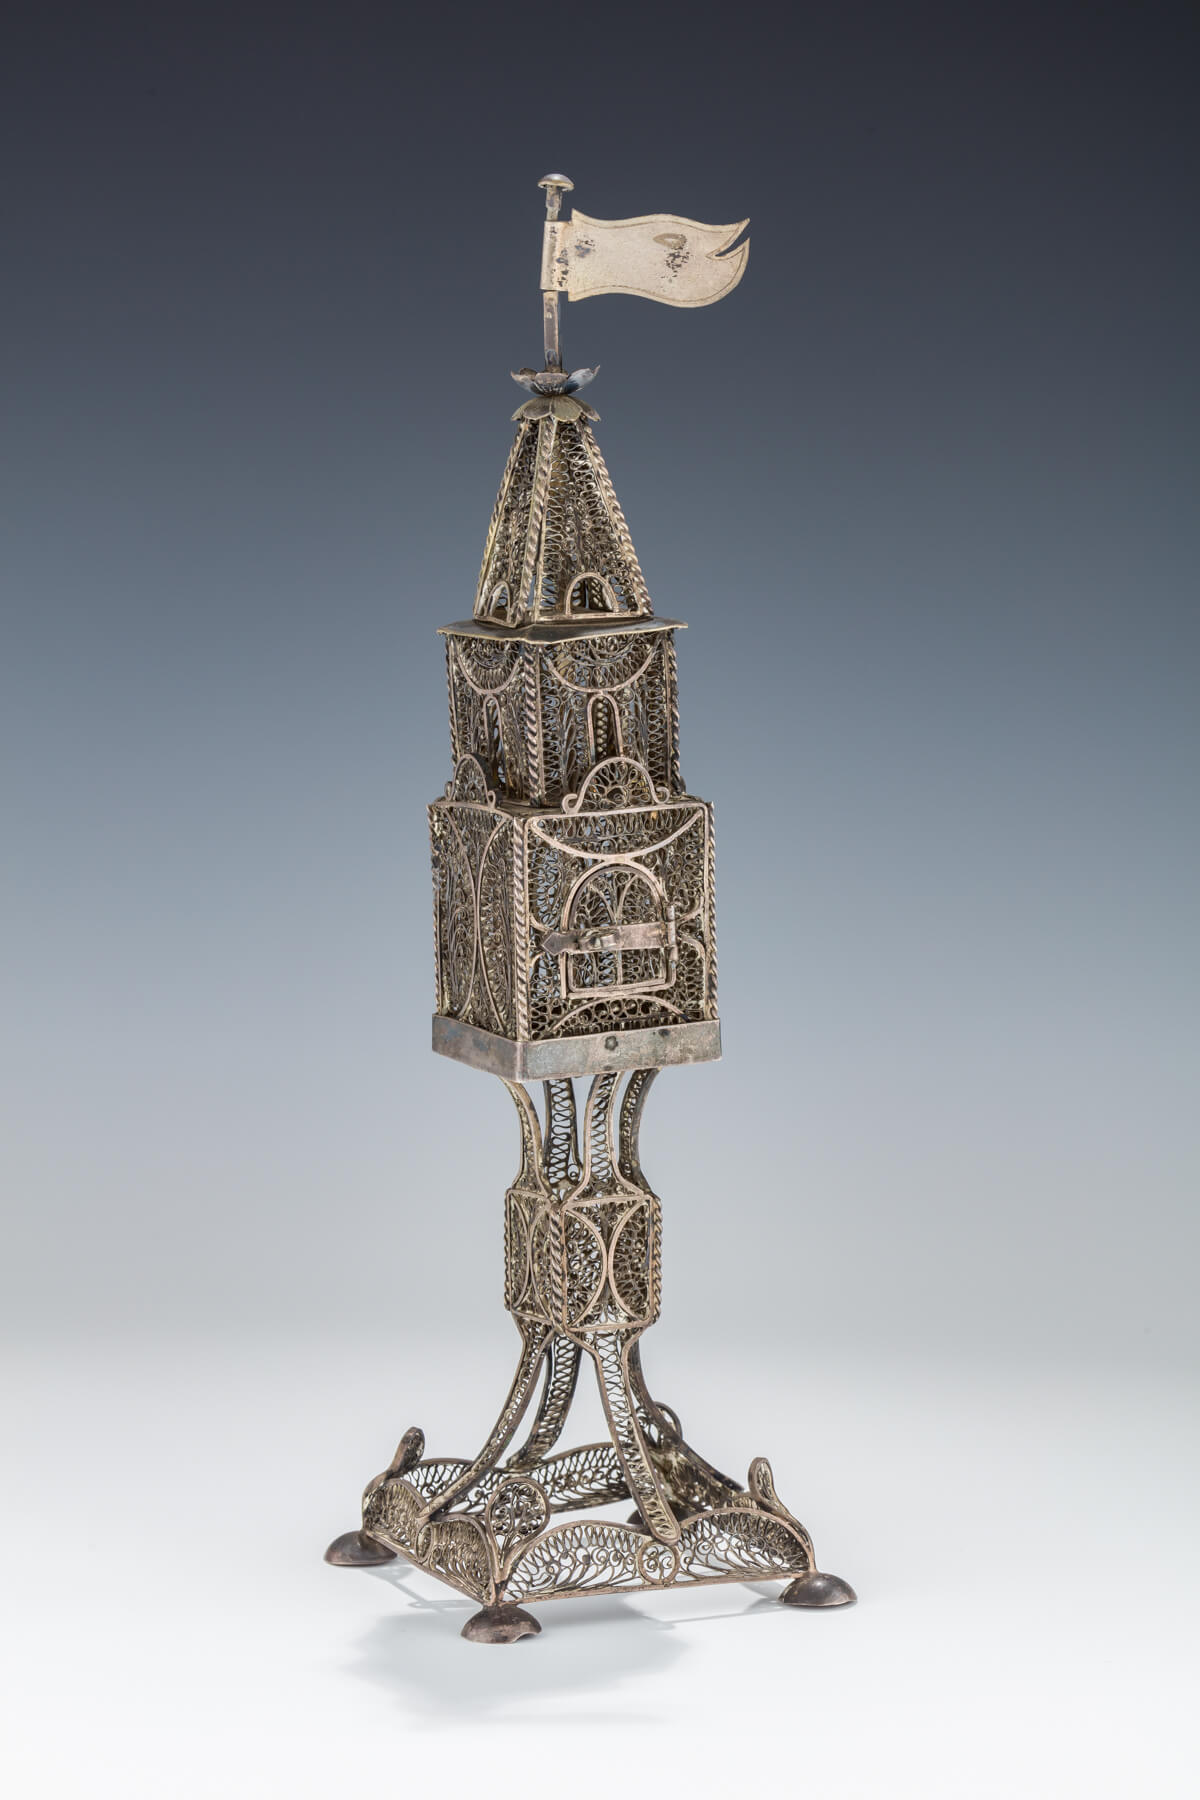 019. A Large Filigree Spice Tower